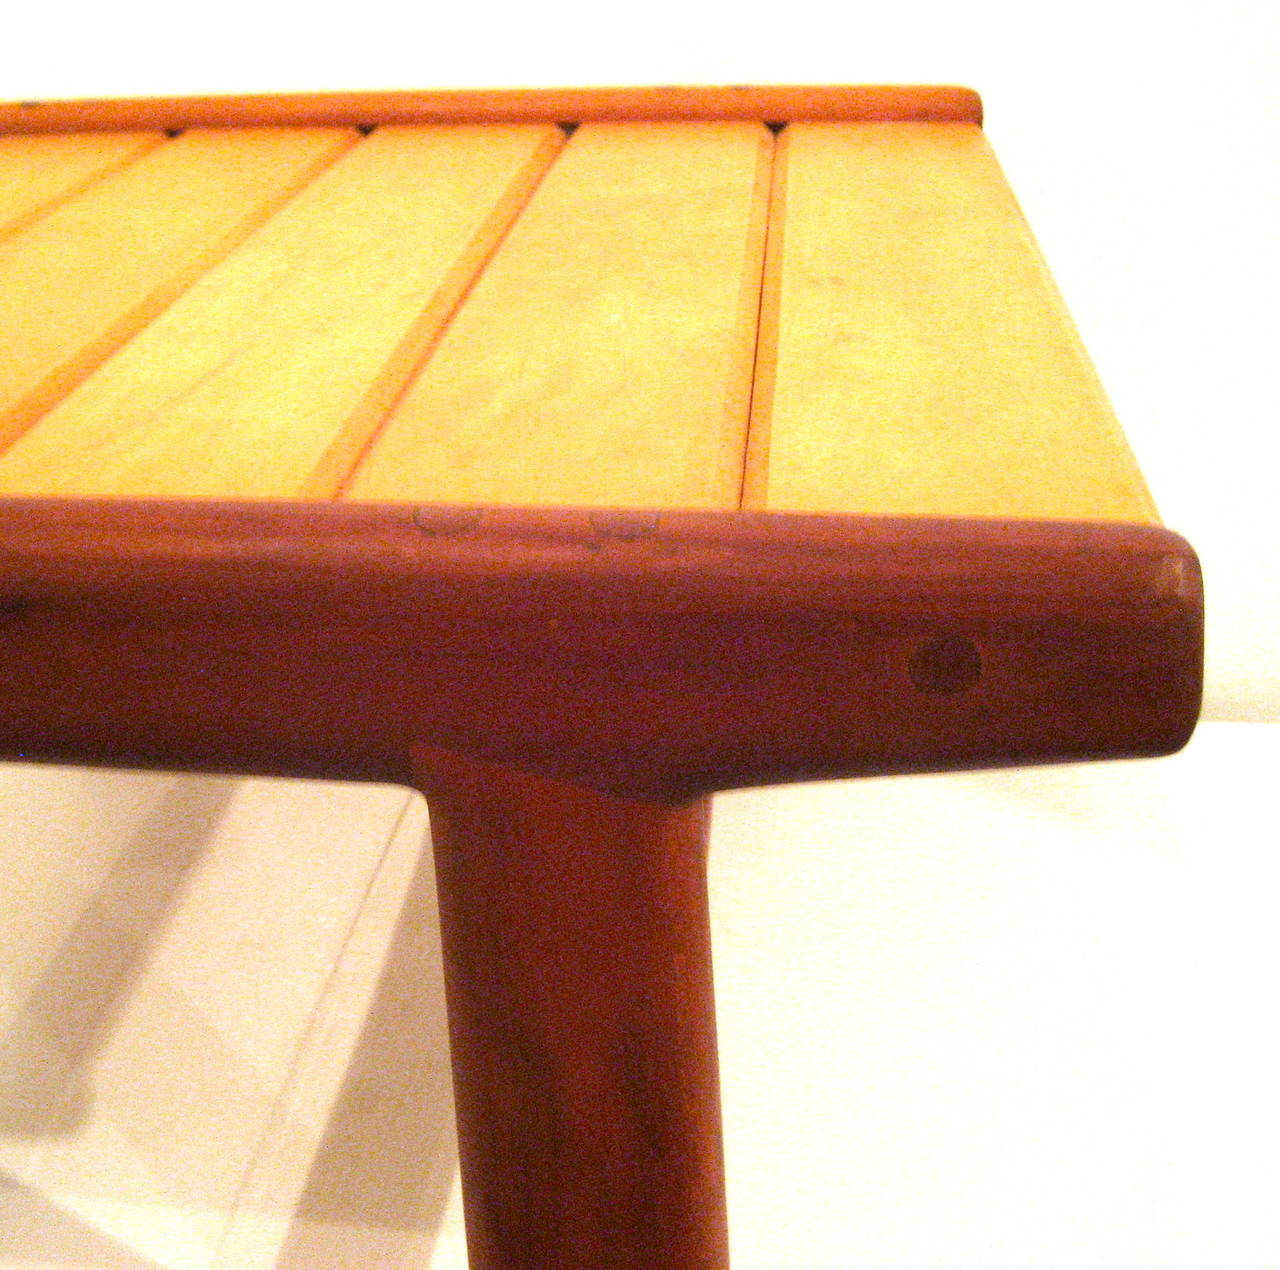 Danish Modern Noguchi Style Low Japanese Bench Or Stool At